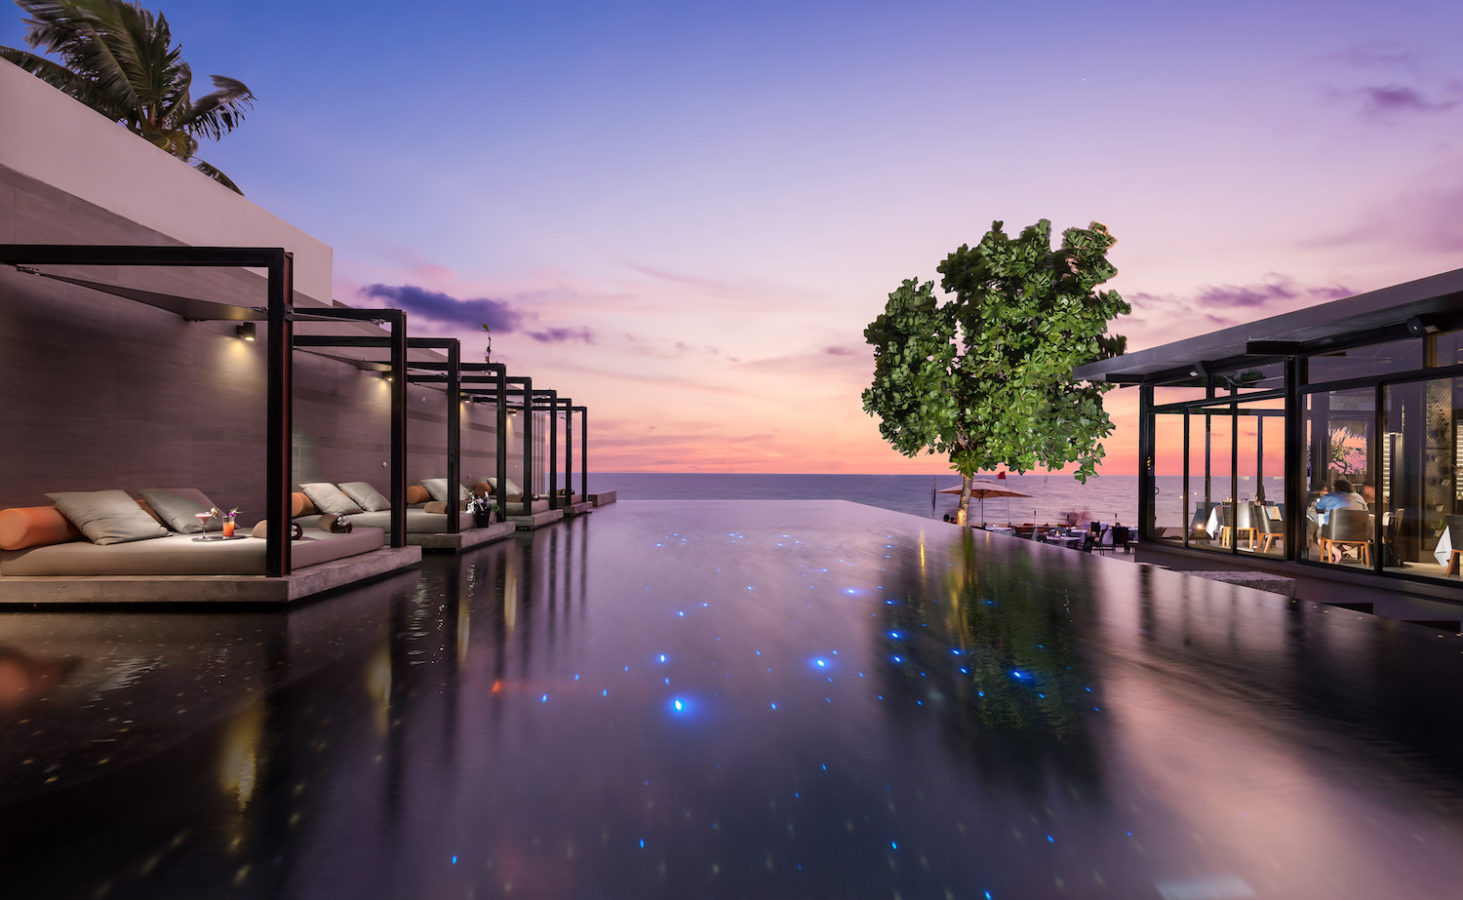 Safe Cocoons Luxury Hotels And Resorts In Indochina For Travel Post Covid 19 Prestige Online Indonesia